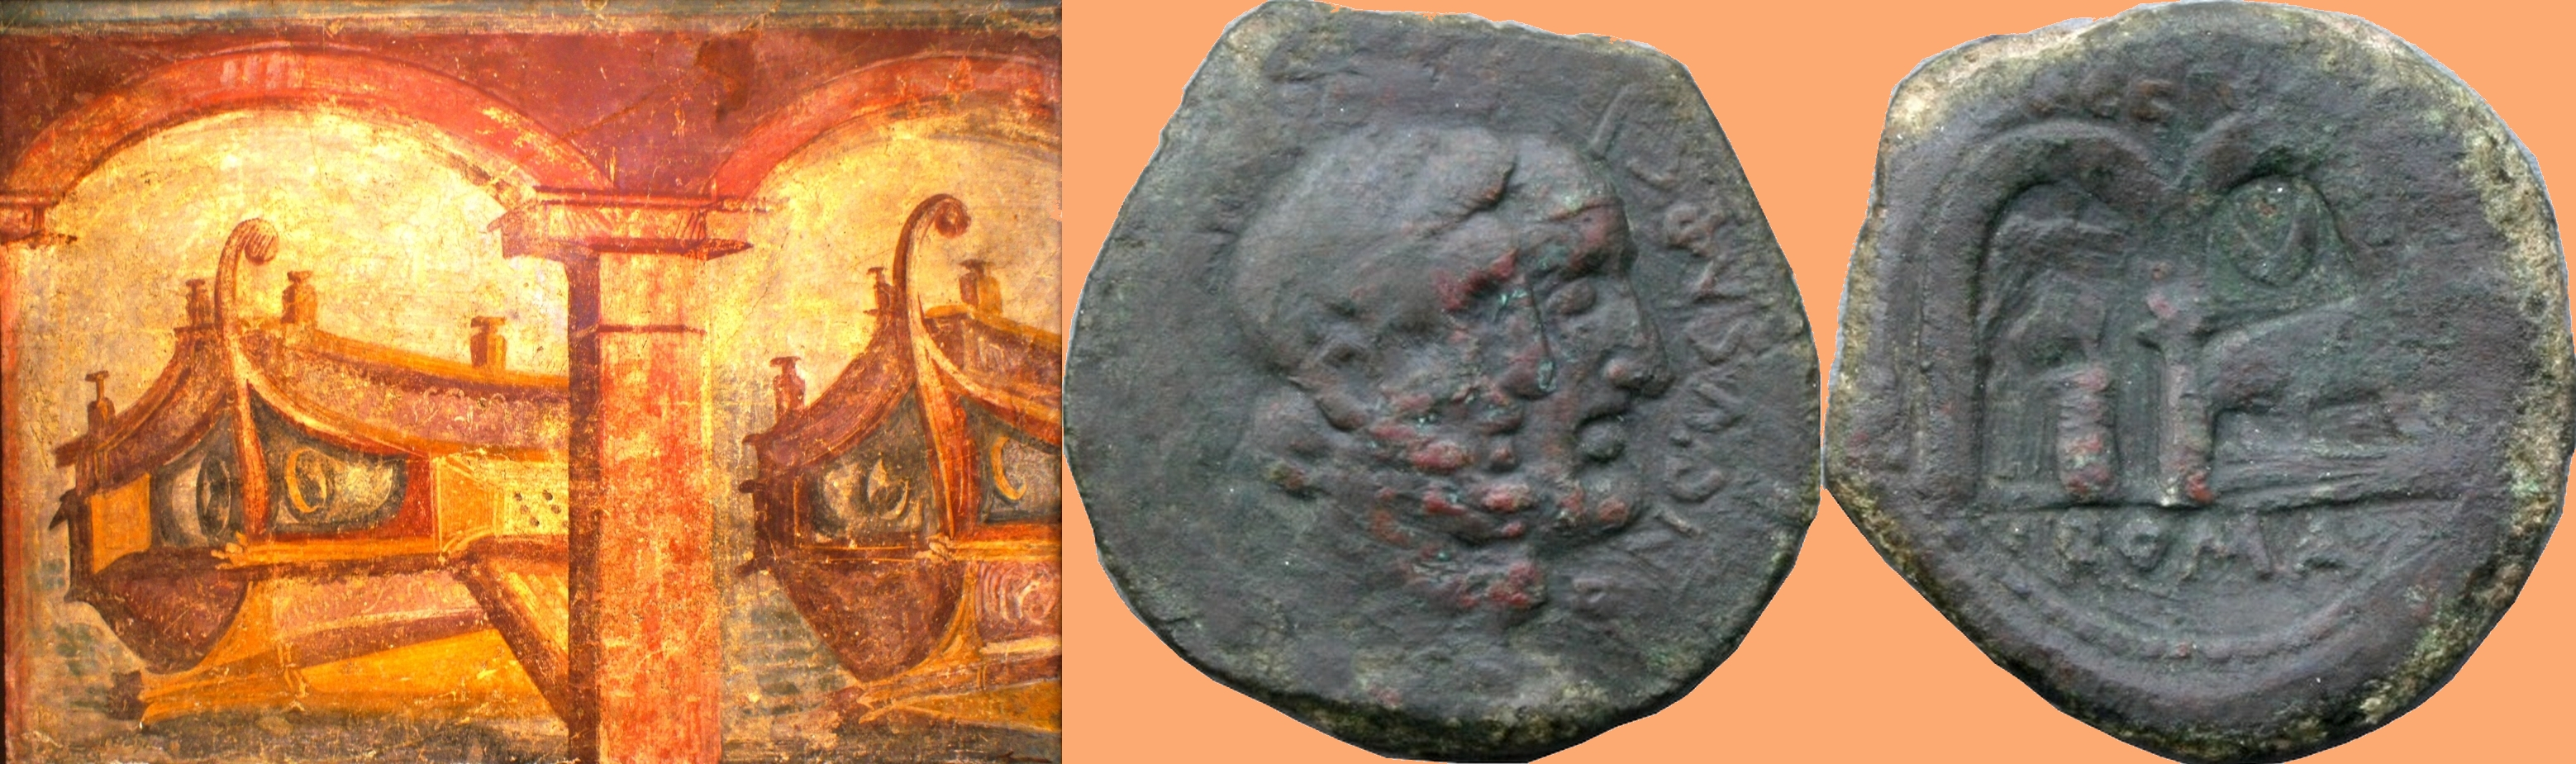 346/3 coin of Censorinus 88BC with statue, Two Arches and a Ship, beside a Pompeian painting of Two Arches and Two Ships in harbour